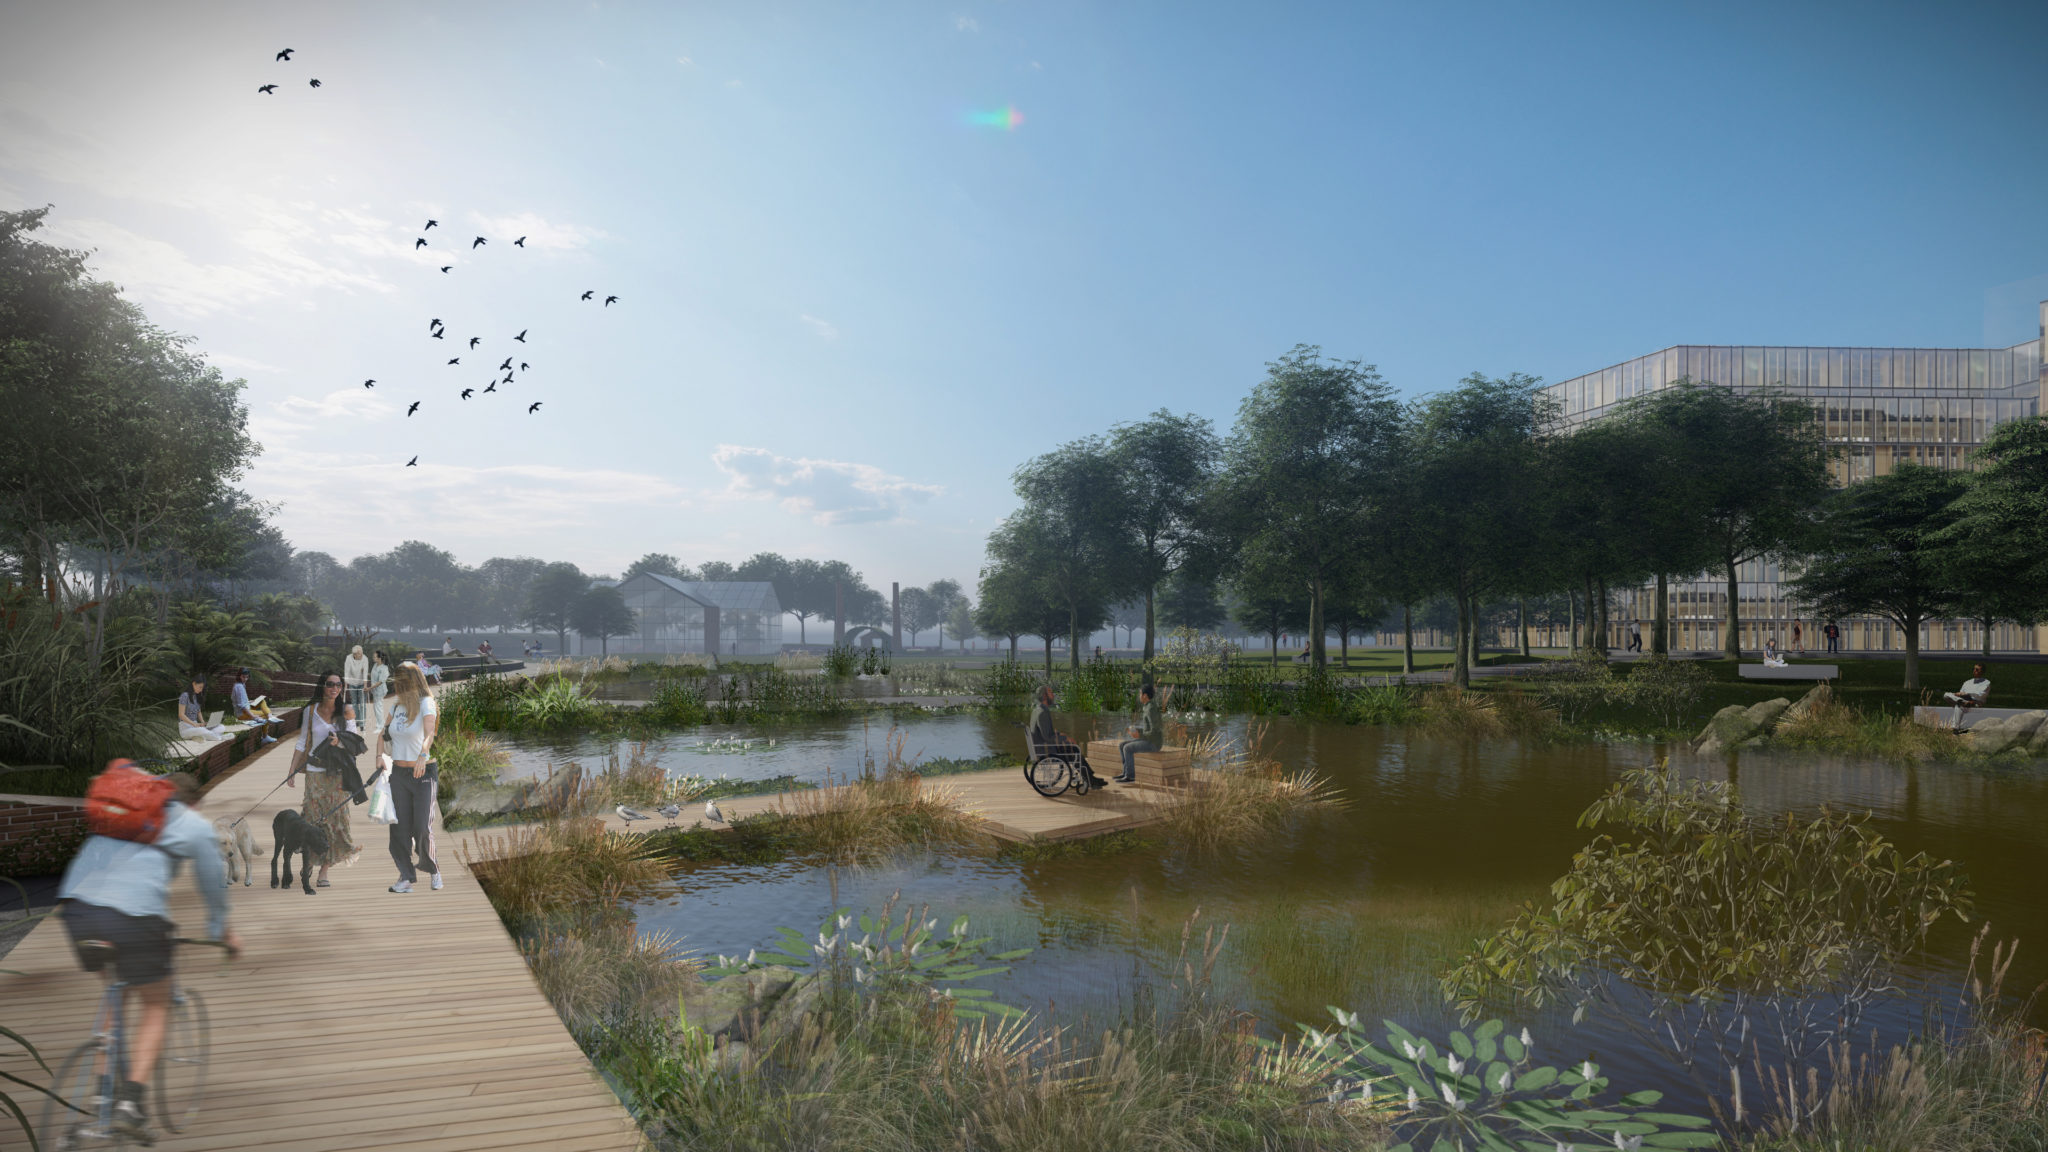 Biophlic design inspired hospital grounds bring the health benefits of nature to patients and the broader community